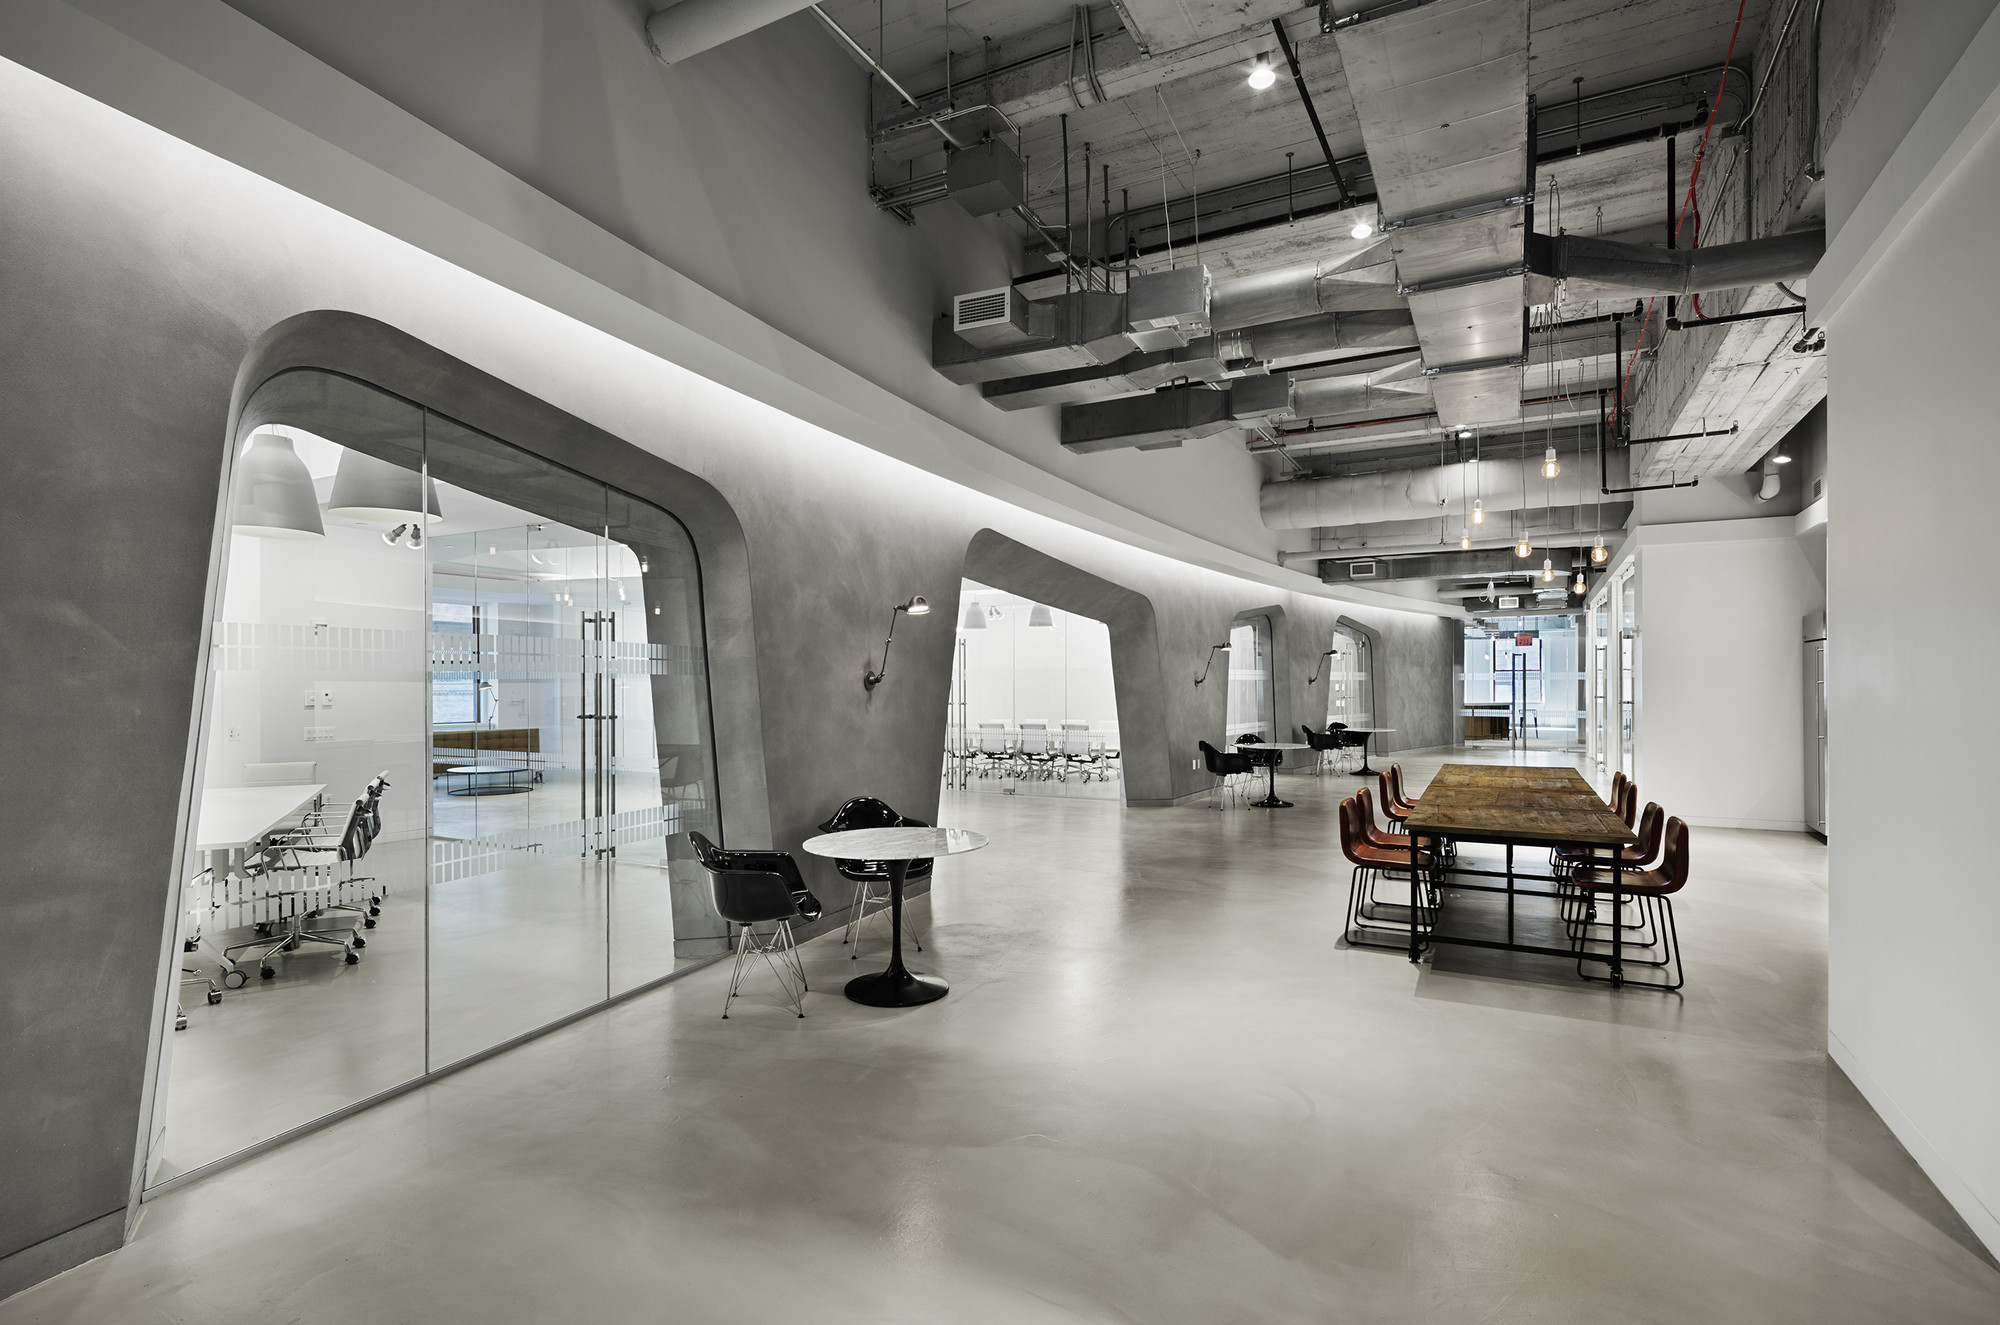 Lf usa womens apparel group spacesmith archdaily for Office design new york